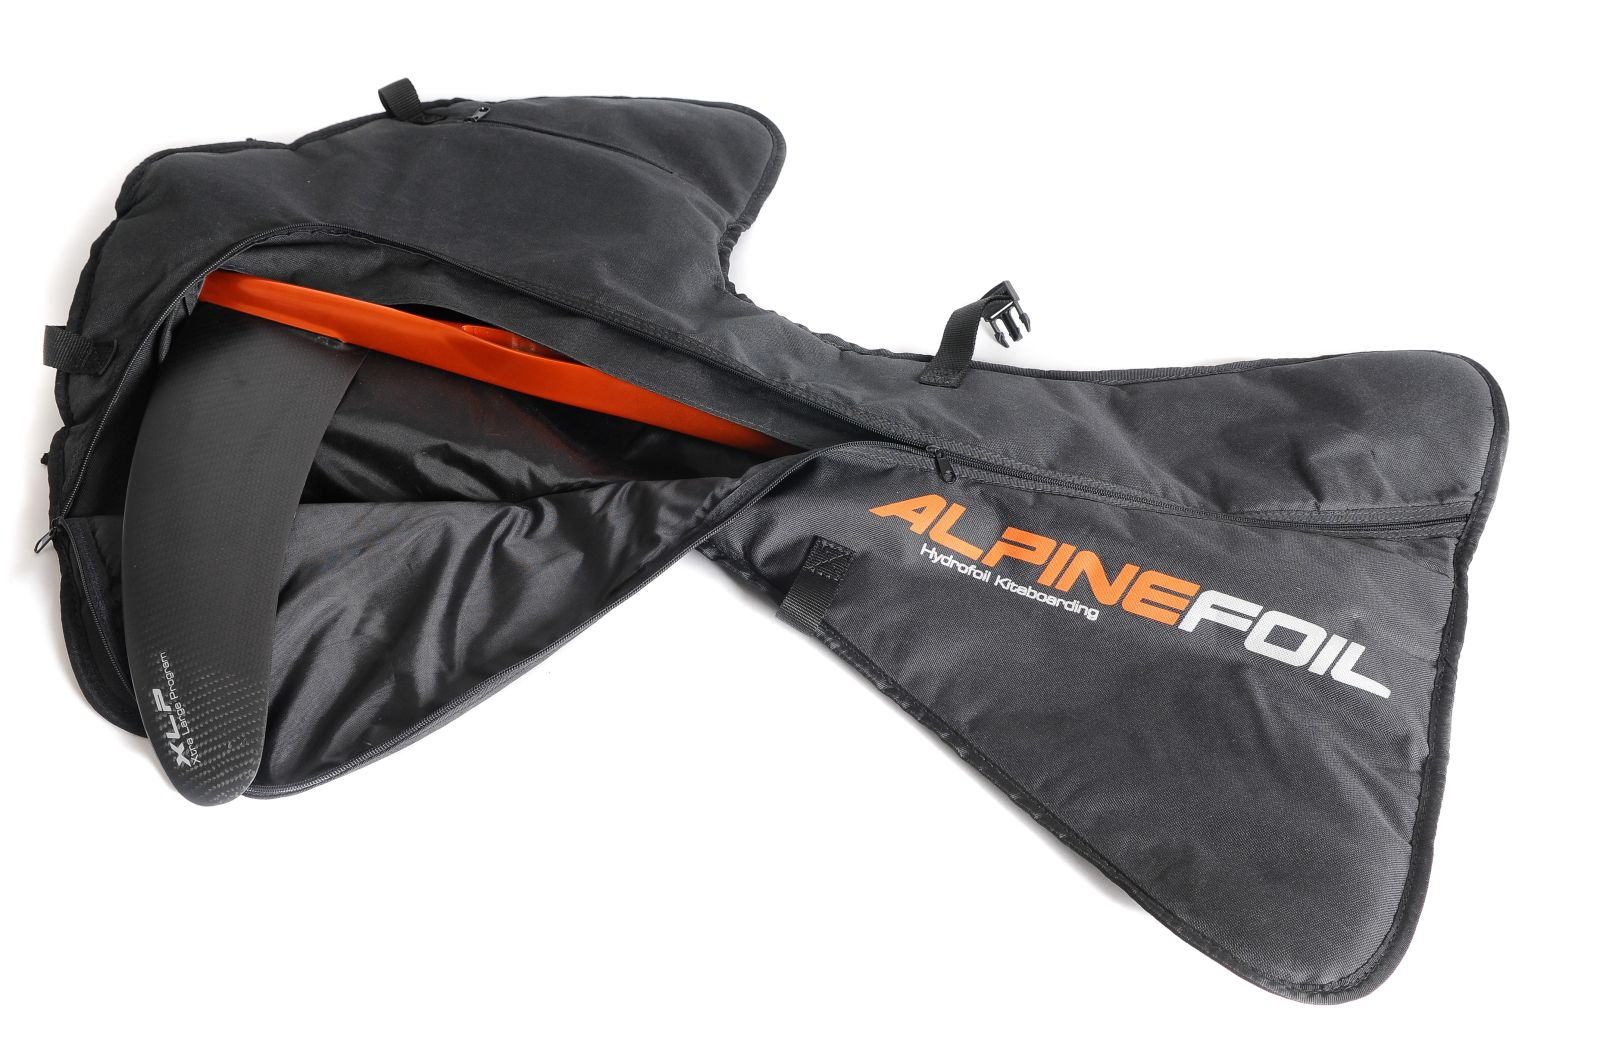 Kitefoil alpinefoil carbon bag boardbag footstrap accessories 3120